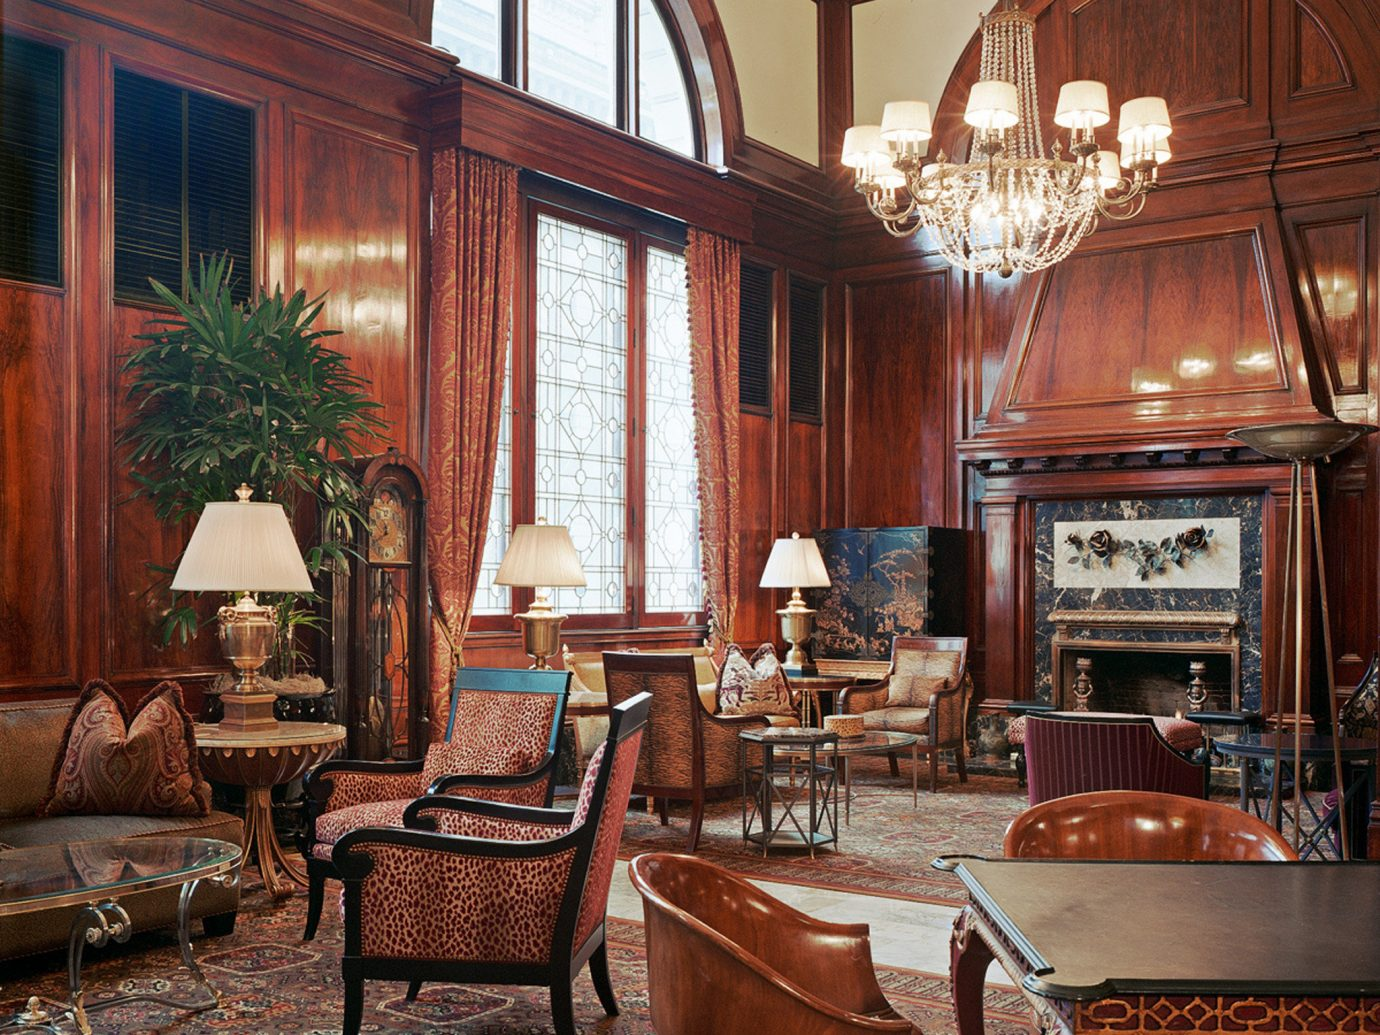 City Elegant Historic Hotels Lobby Lounge indoor room chair dining room floor Living property estate window home living room interior design furniture mansion Fireplace wood farmhouse old ceiling palace decorated several dining table